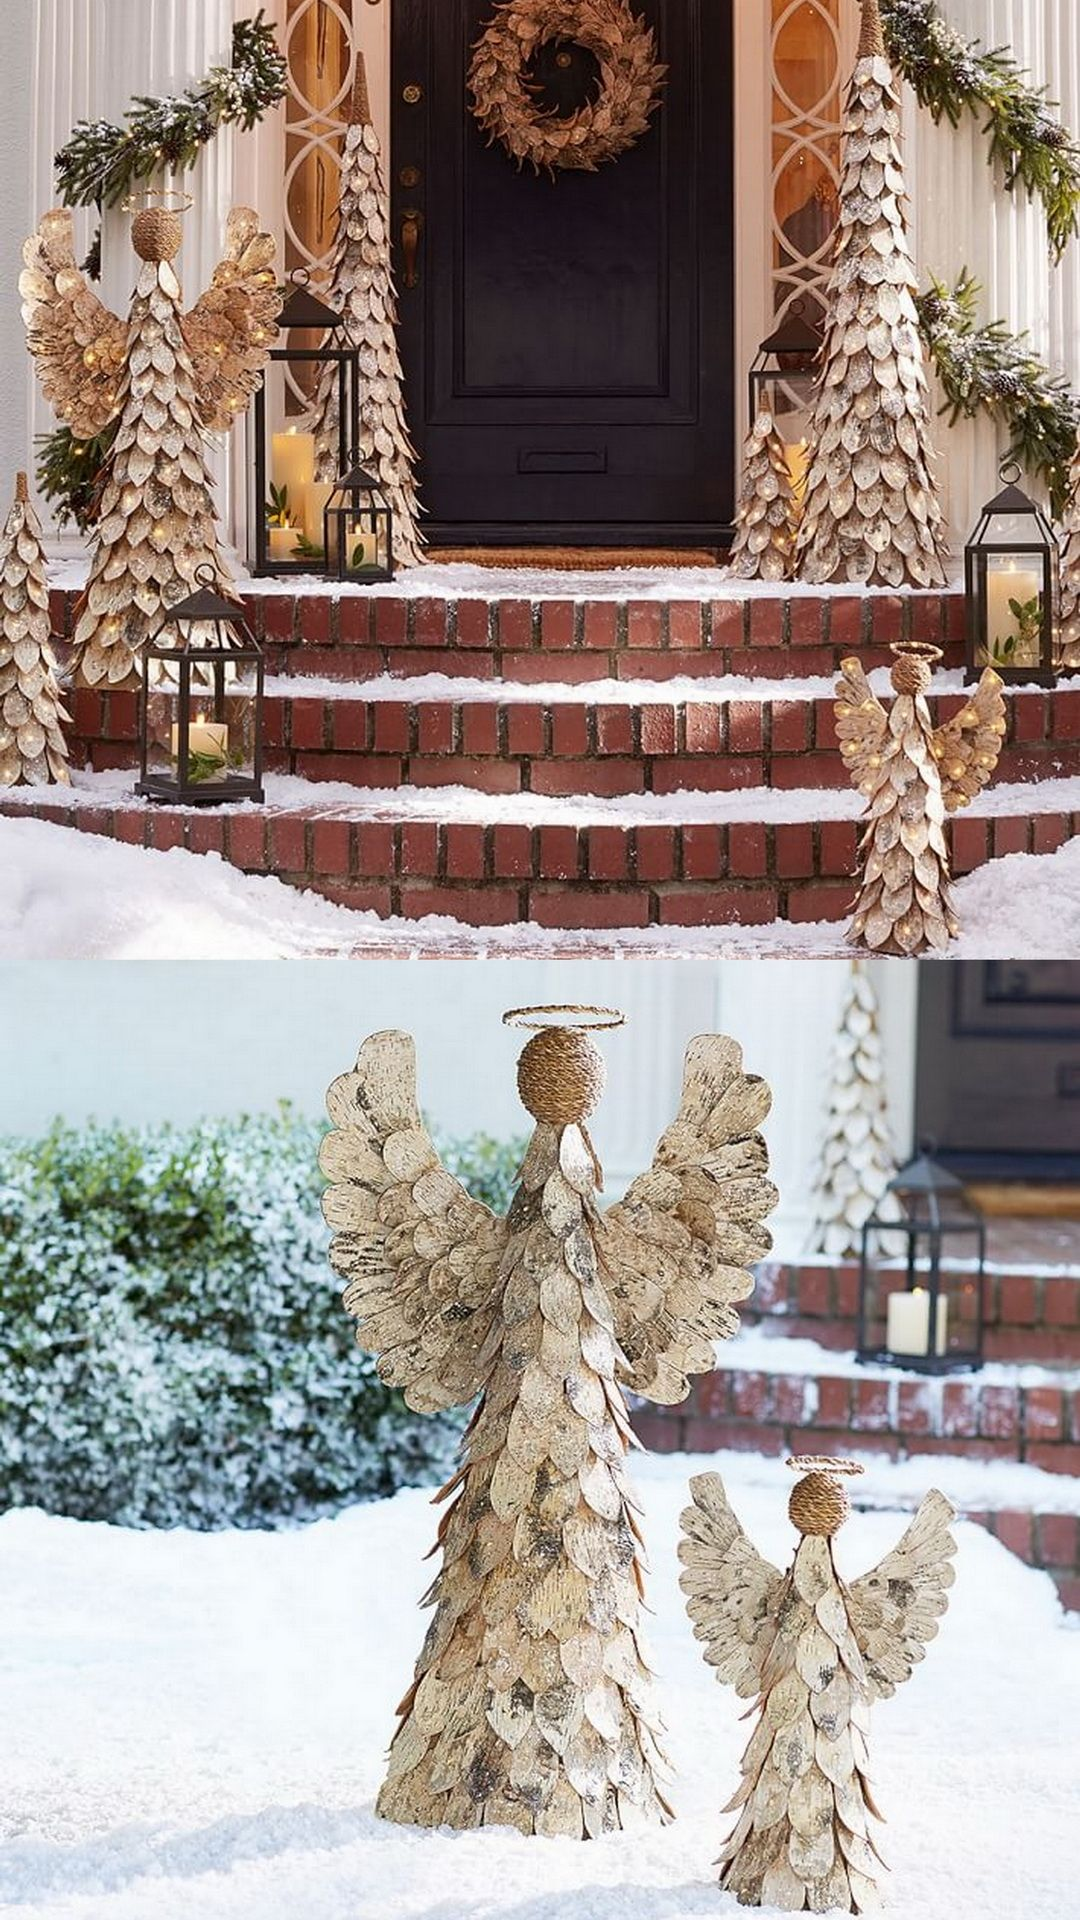 27 exceptional outdoor christmas decorations potterybarn - Pottery Barn Outdoor Christmas Decorations